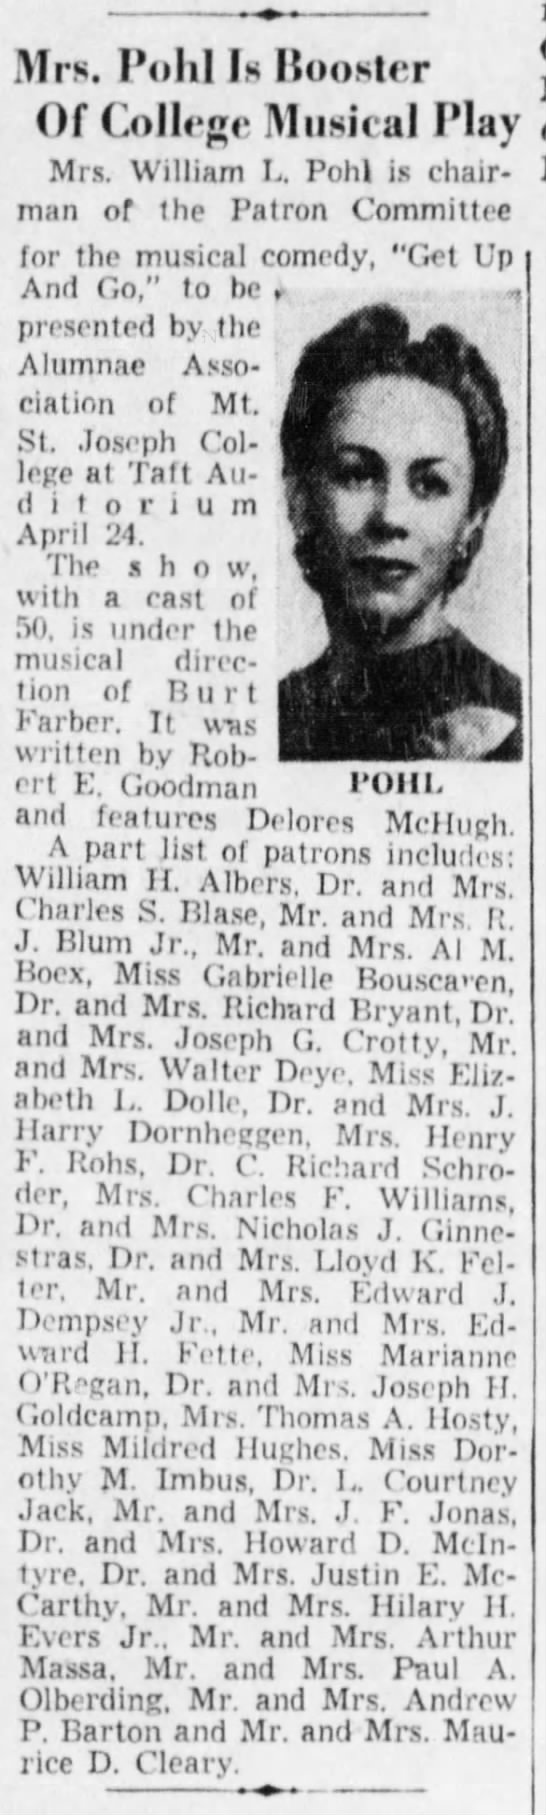 1953 Apr 19 CJ patron of play - Mrs. PoM Is Booster Of College Musical Play...